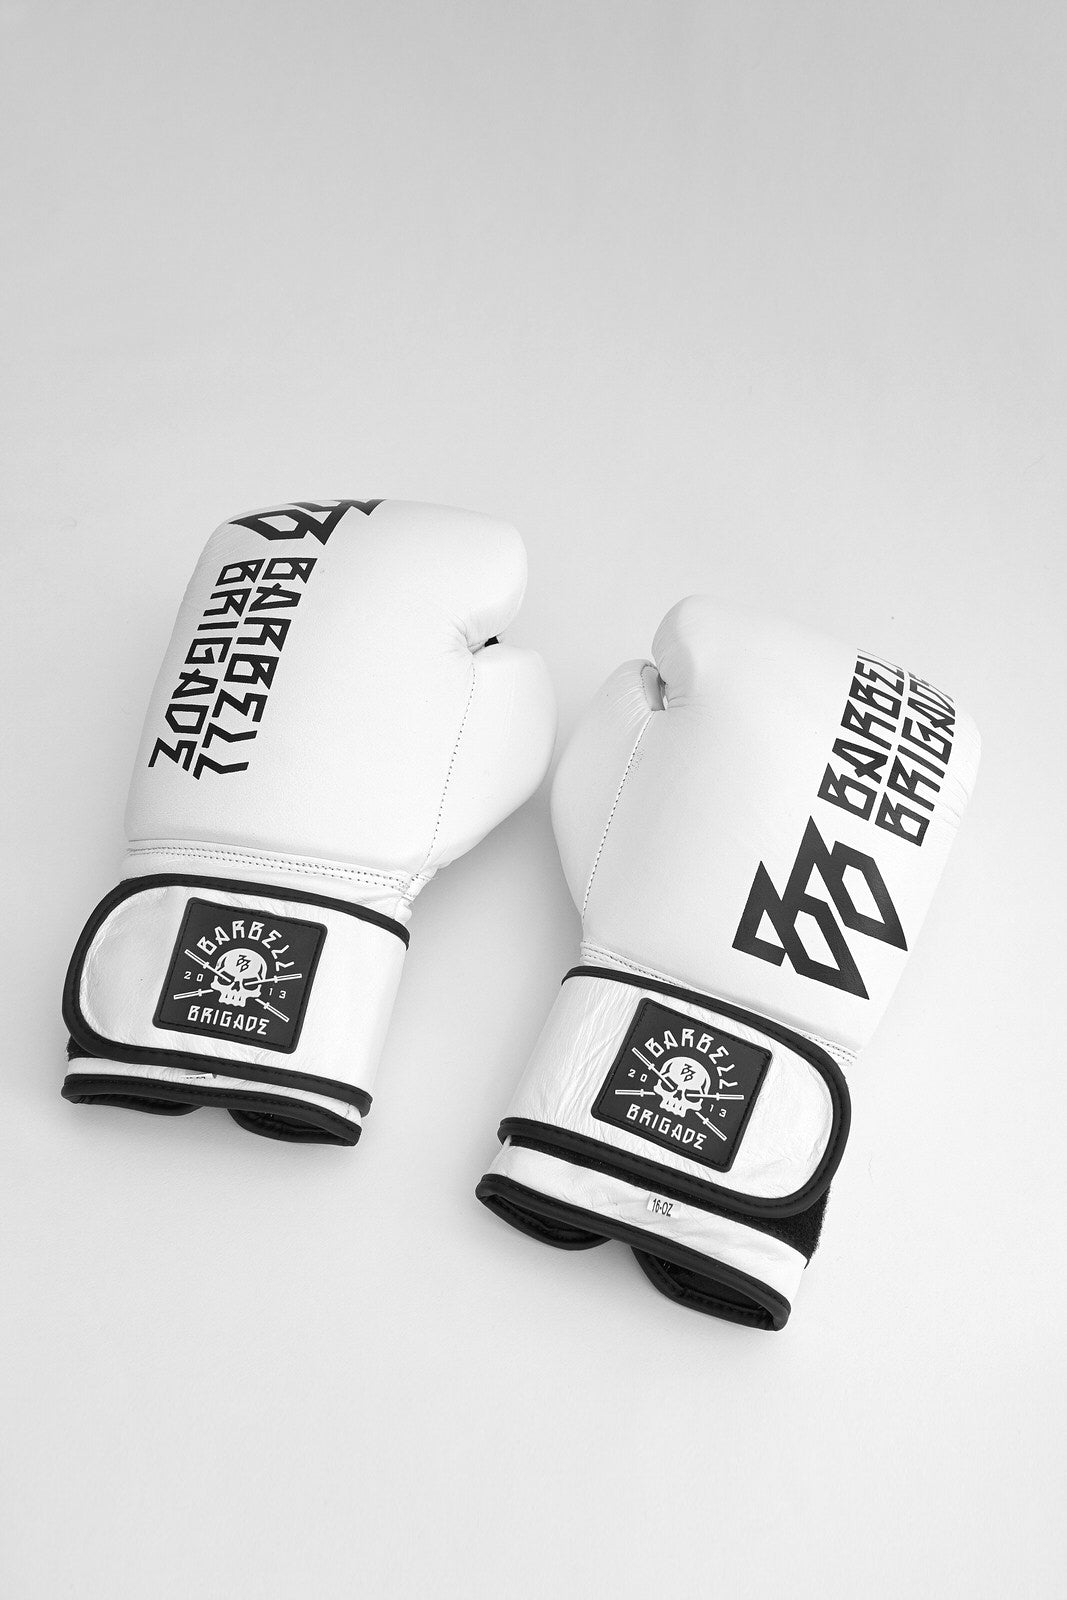 Top of white UVU boxing gloves